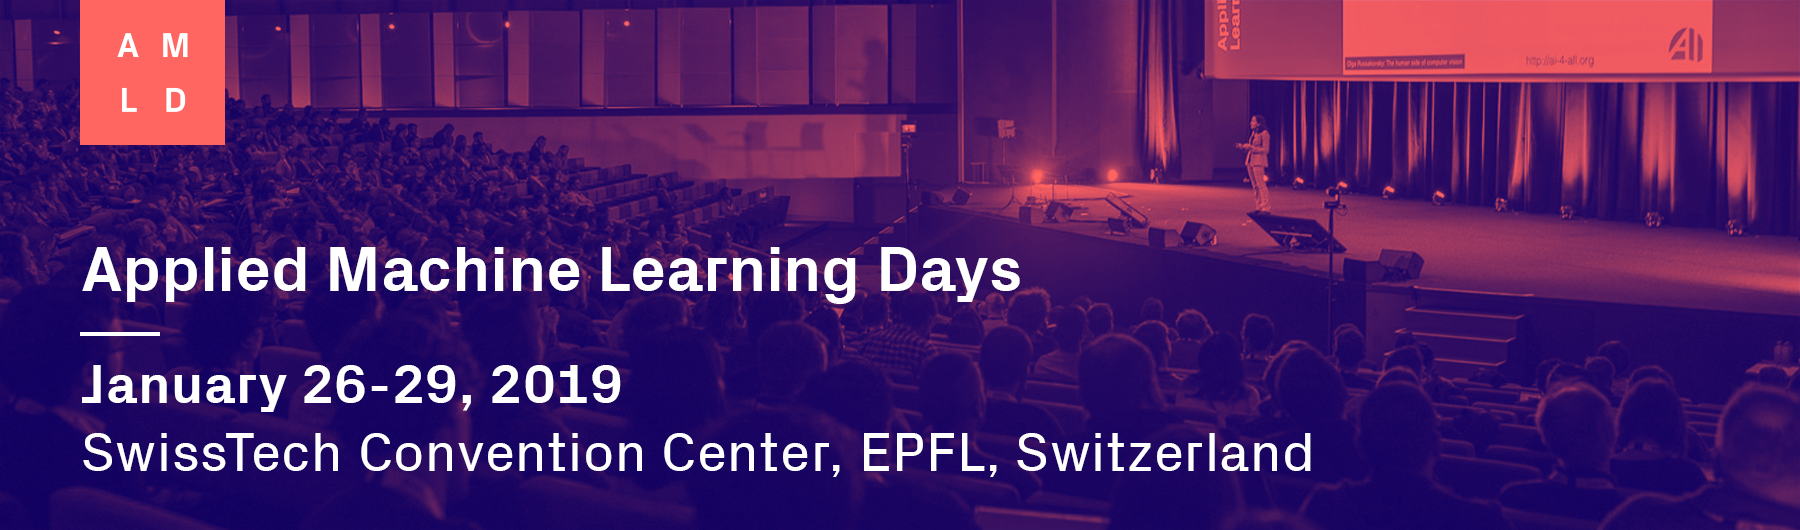 Applied Machine Learning Days 2019